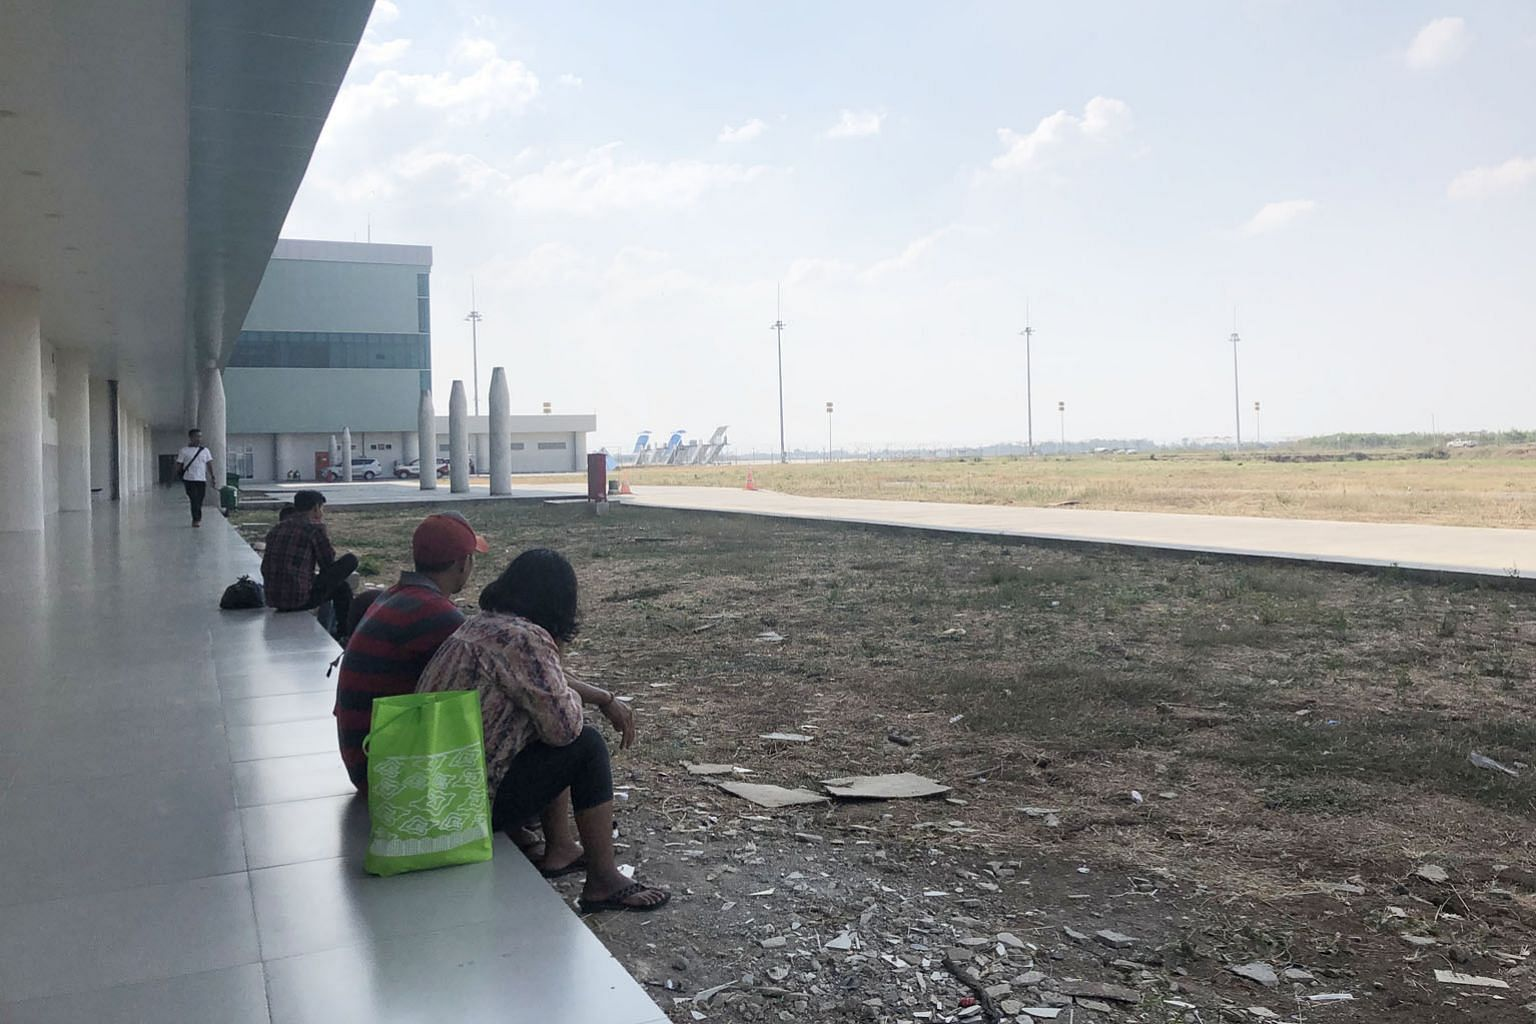 Mr Idris Ridha and his family waiting for their flight at Kertajati International Airport. The trio missed the free shuttle bus from Bandung to Kertajati and had to hire private transport with five other travellers to get to the airport. Travellers s